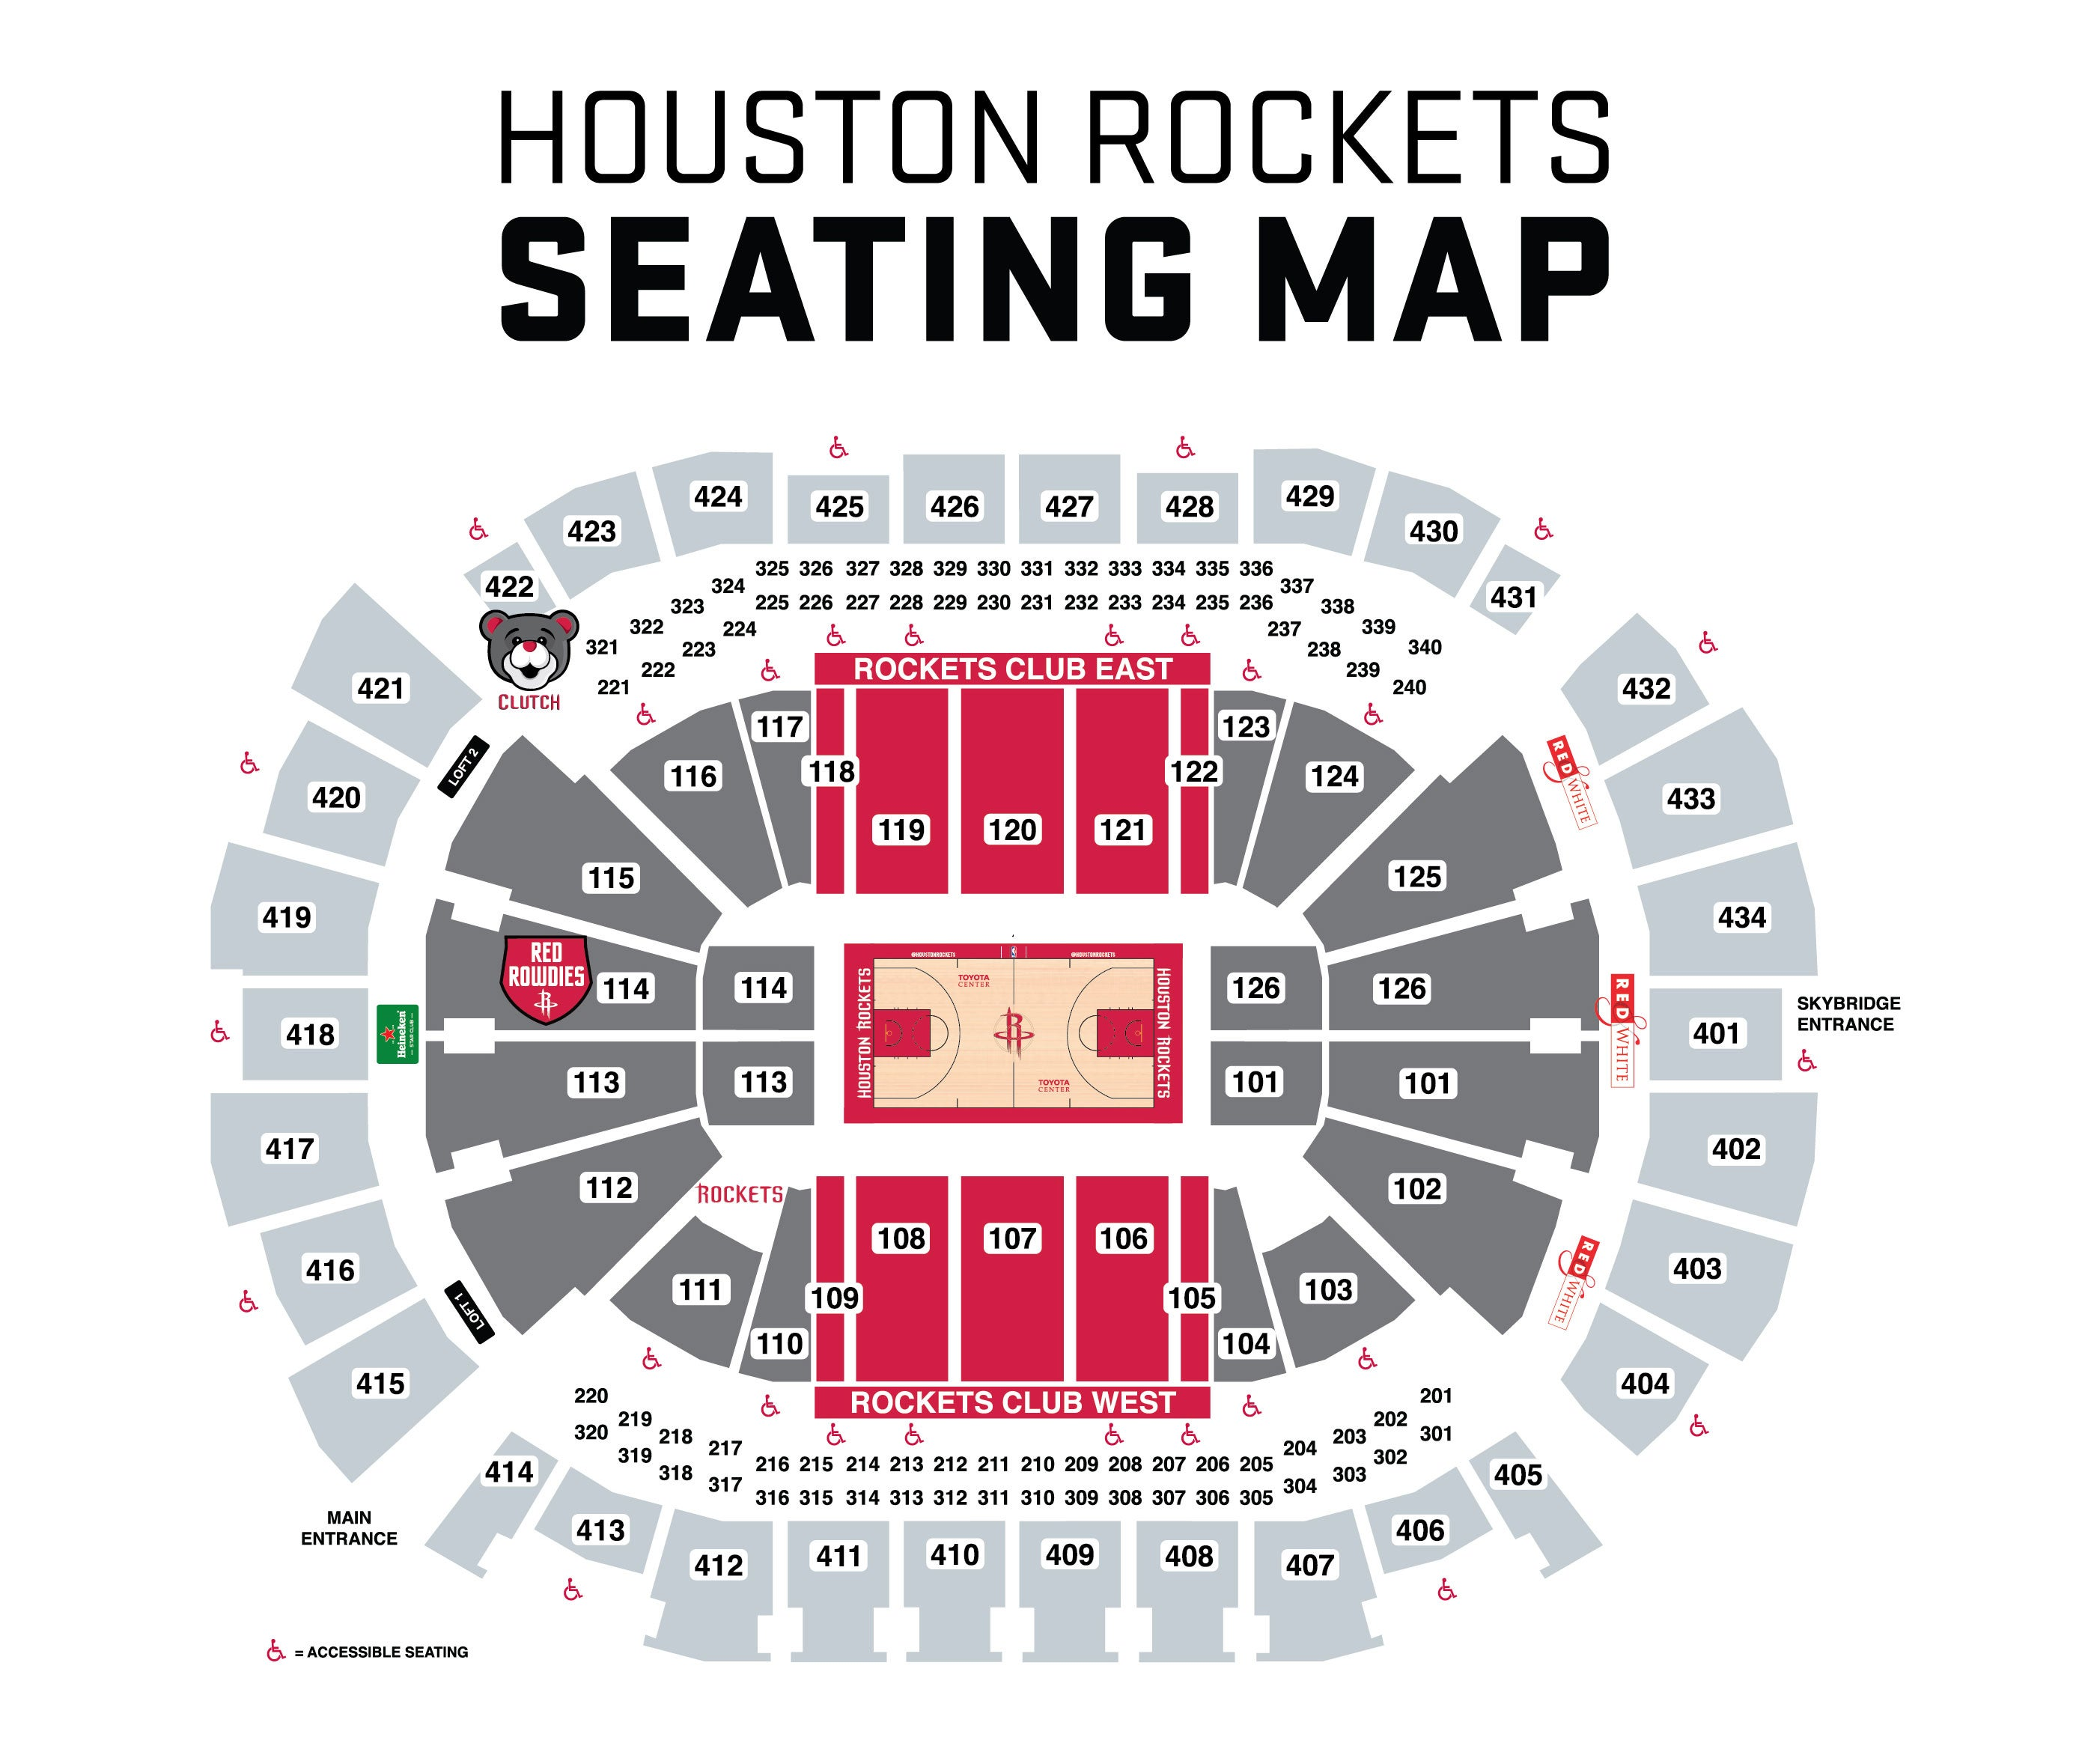 Houston Rockets Seating